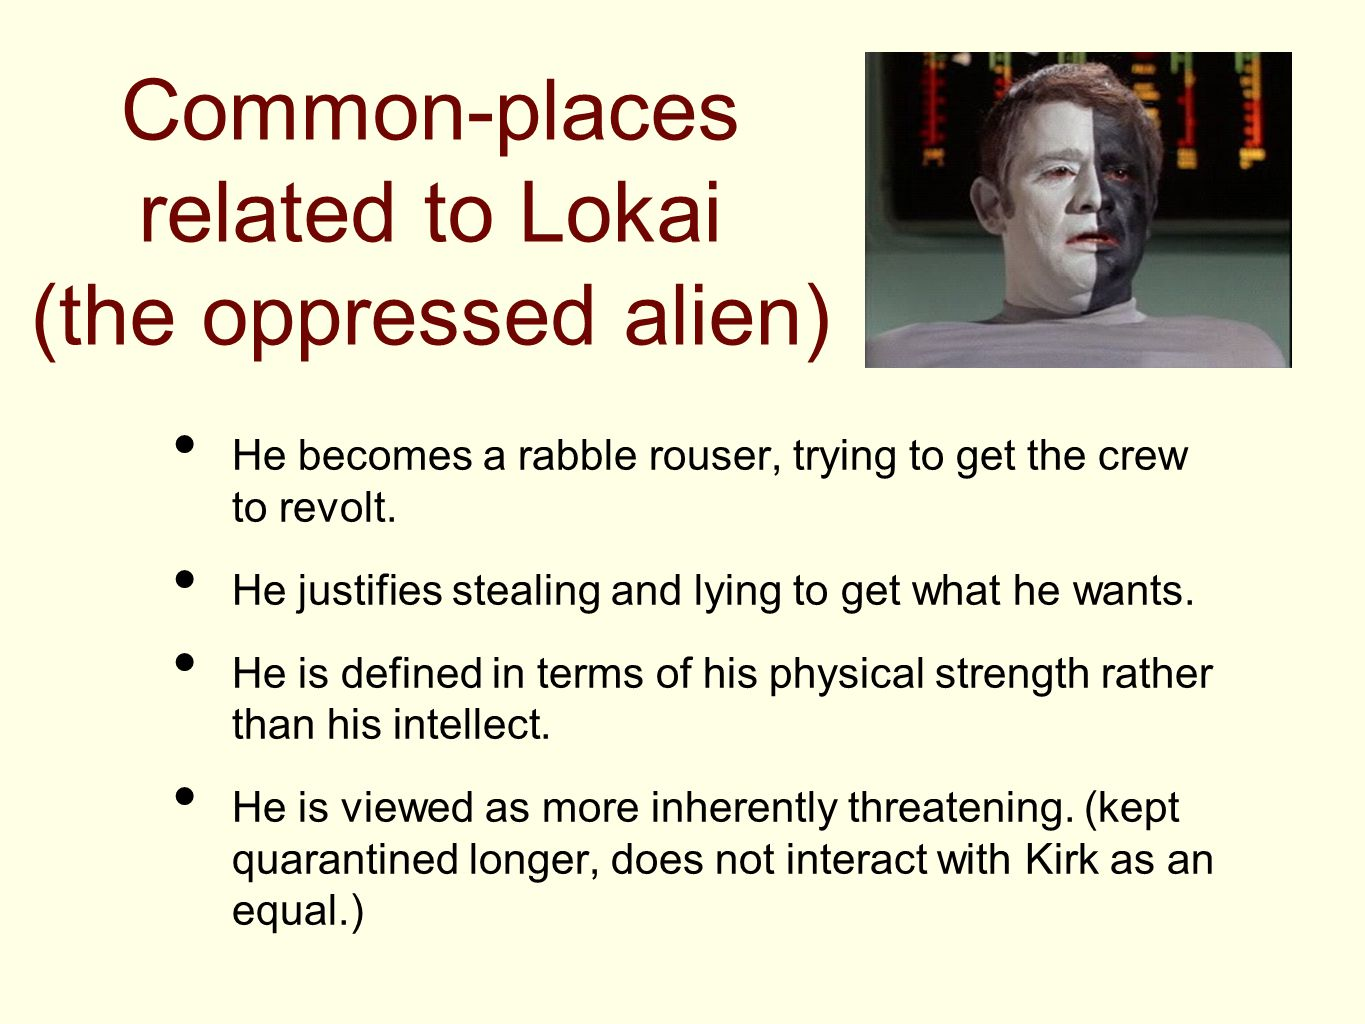 Common-places related to Lokai (the oppressed alien) He becomes a rabble rouser, trying to get the crew to revolt.